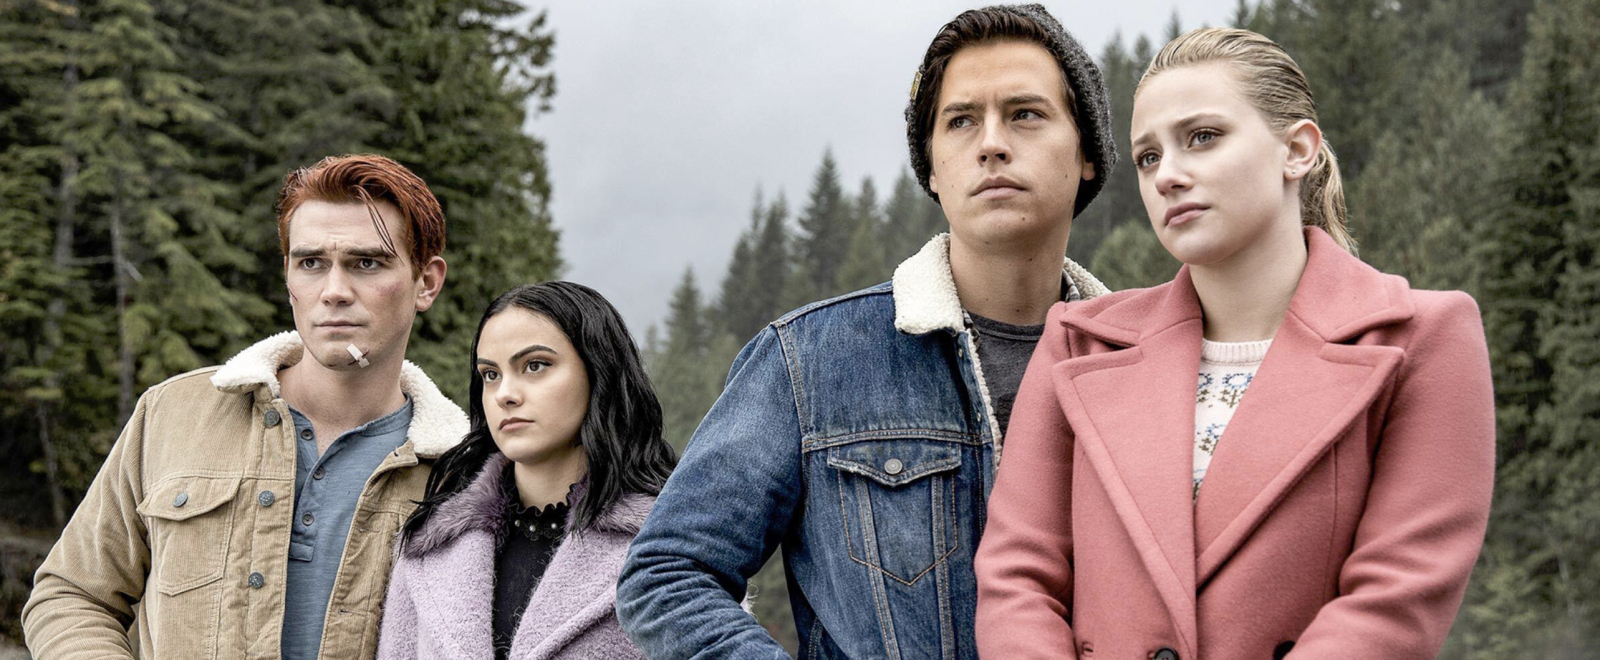 'Riverdale' Is Jumping Seven Years Into The Future, But That's Not The Nuttiest Thing About This Teaser